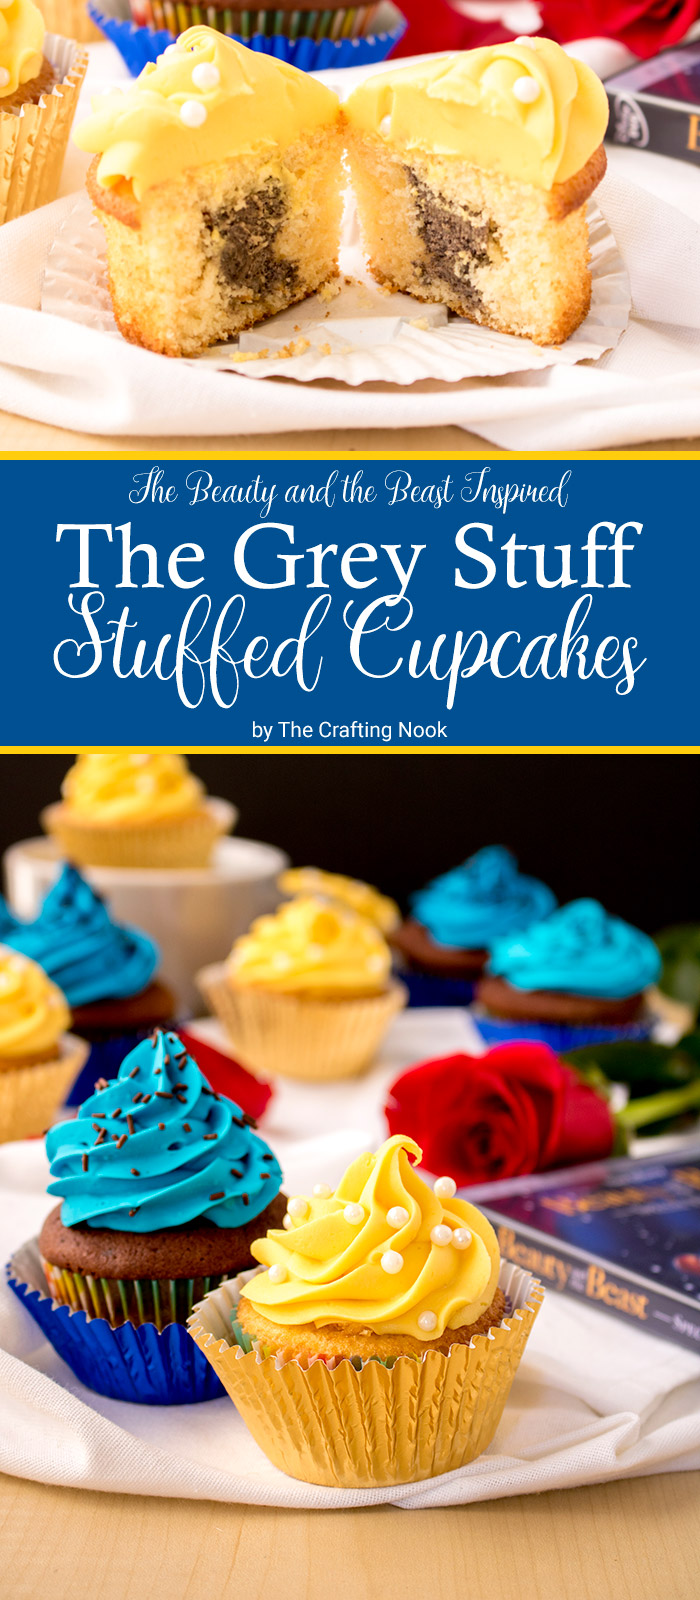 The Grey Stuff Stuffed Cupcakes